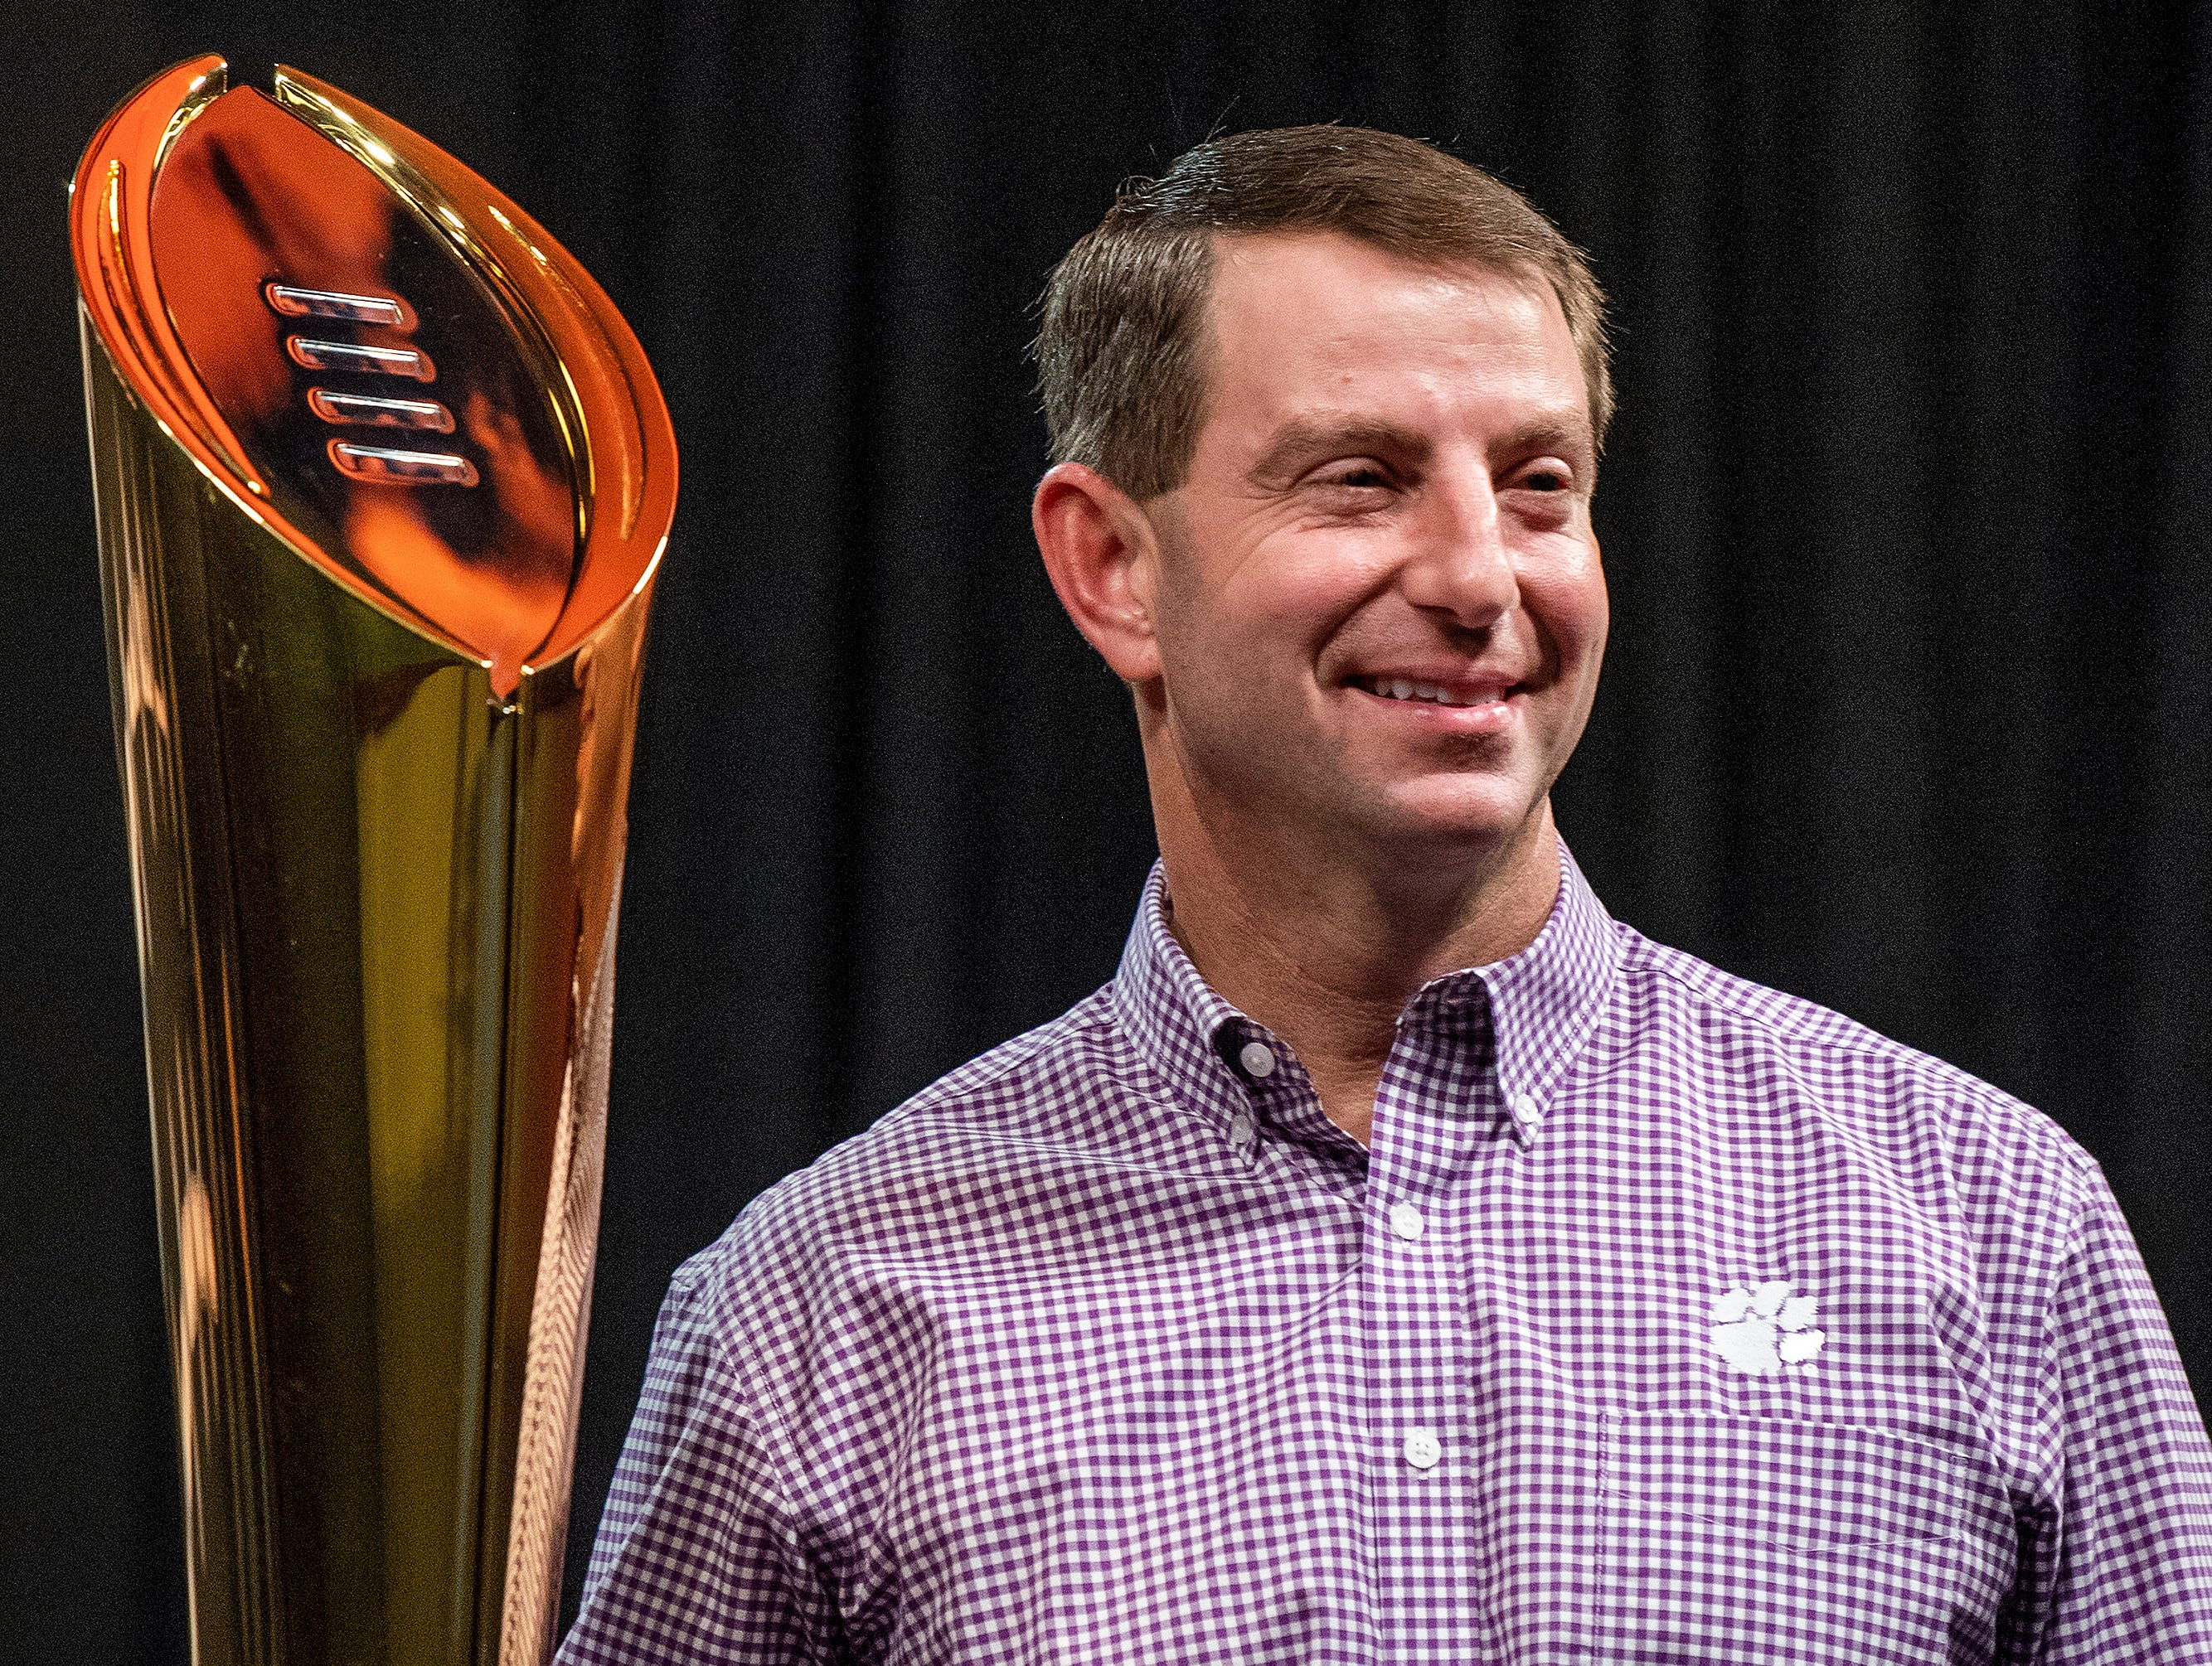 Clemson head coach Dabo Swinney poses with the National Championship Trophy during the College Football Playoff National Championship press conference in San Jose, Ca., on Tuesday January 8, 2019.